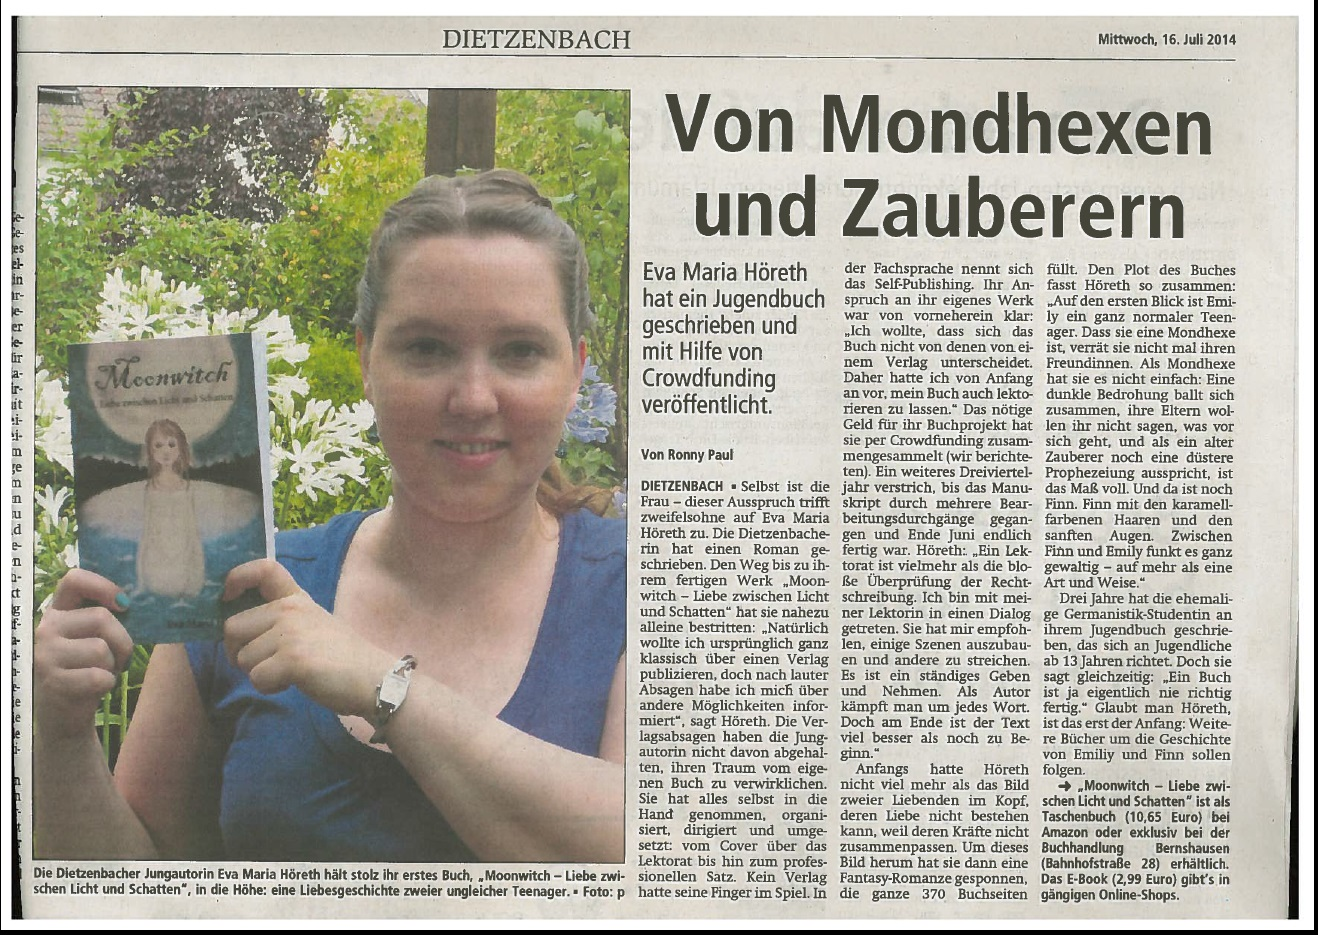 Offenbach Post 16.07.2014